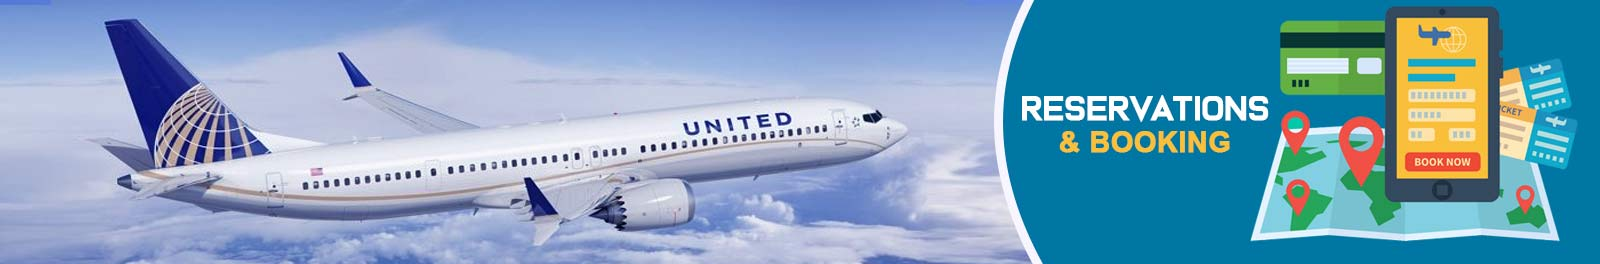 United Airlines Reservations United Airlines Reservation FirstFlyTravel